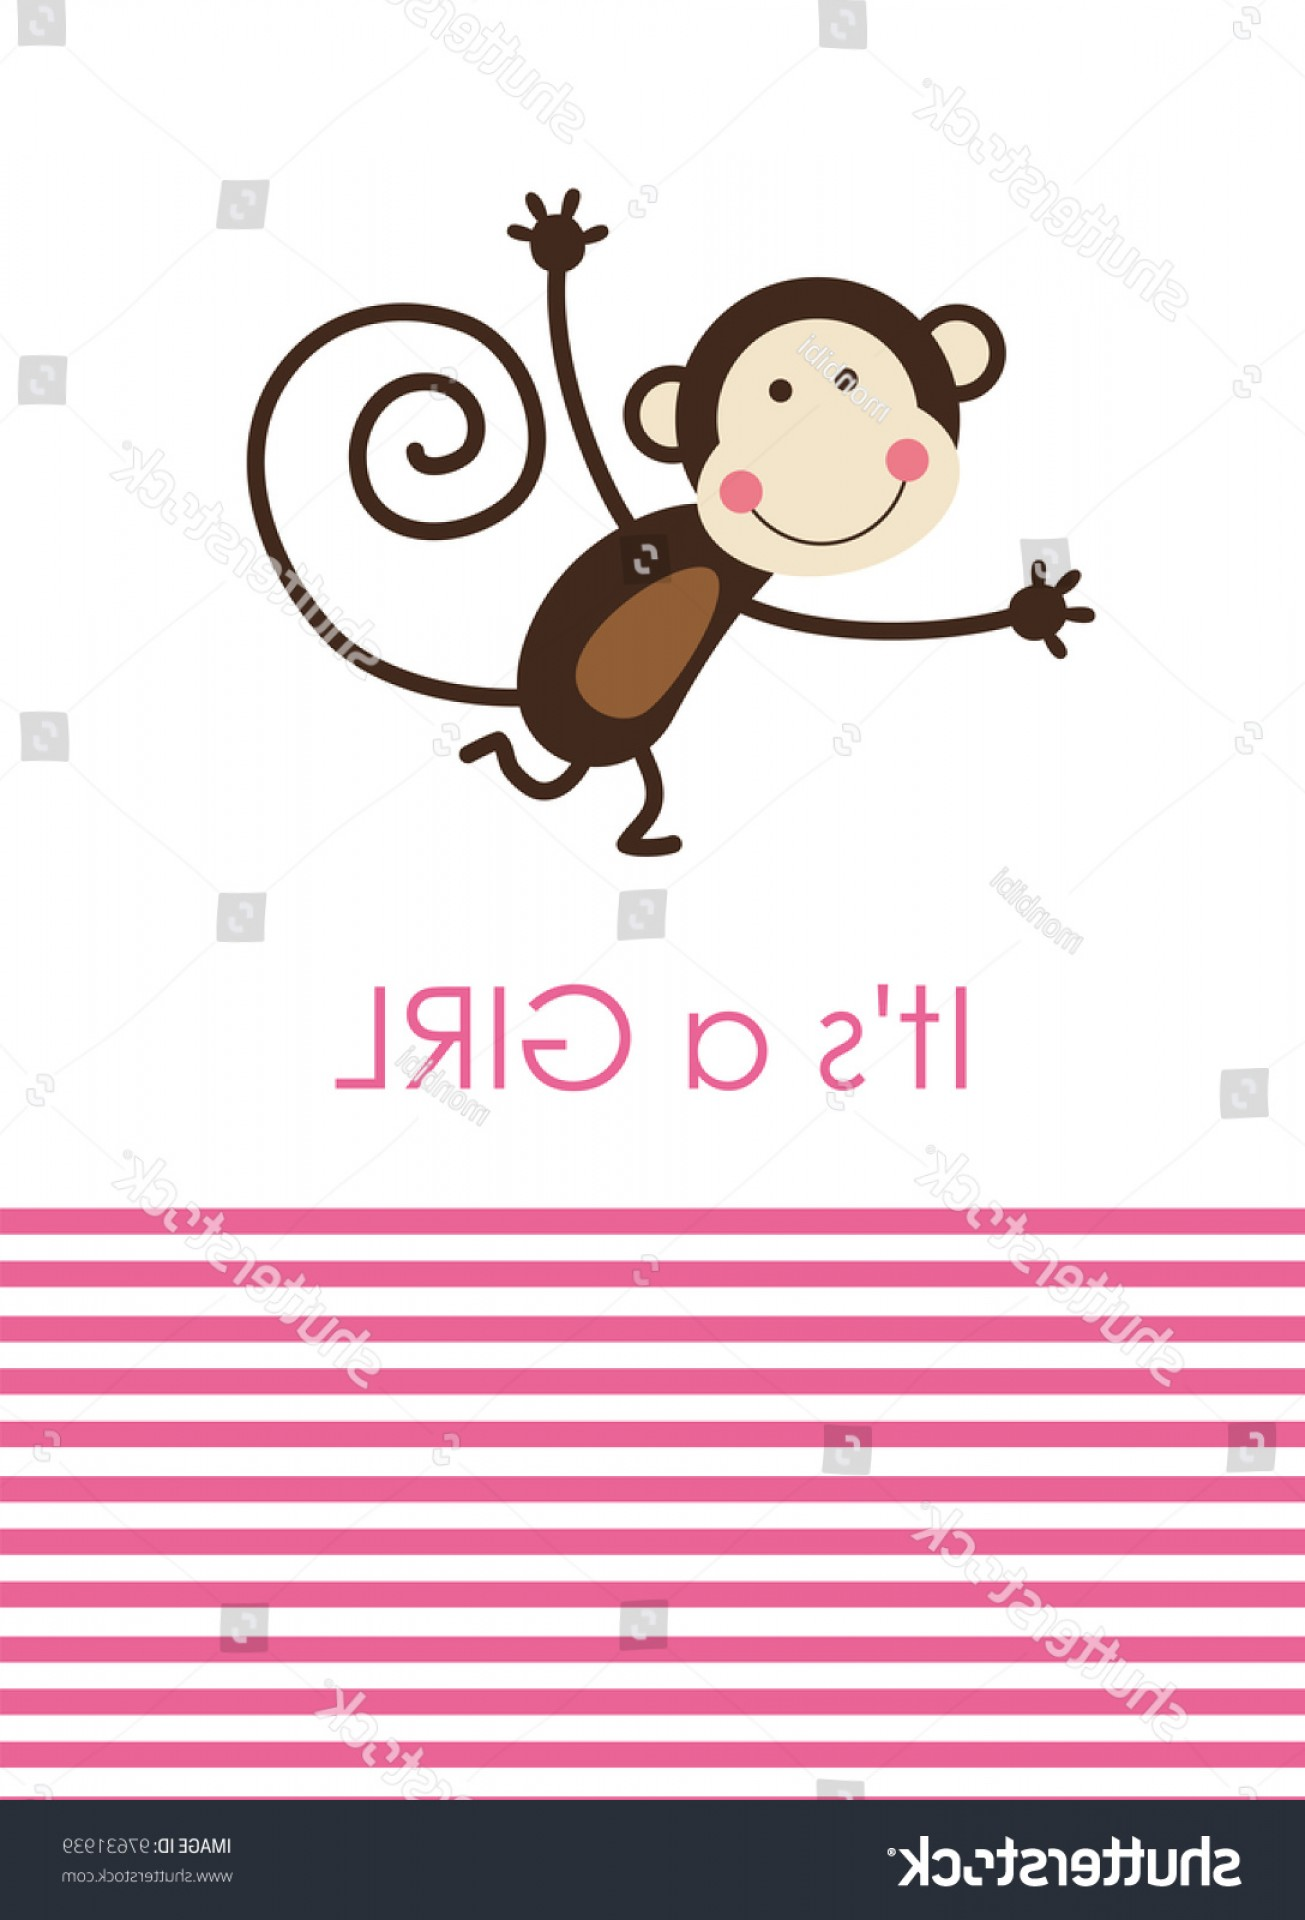 Sitting Monkey Vector Baby Shower: Cute Baby Girl Shower Fun Monkey